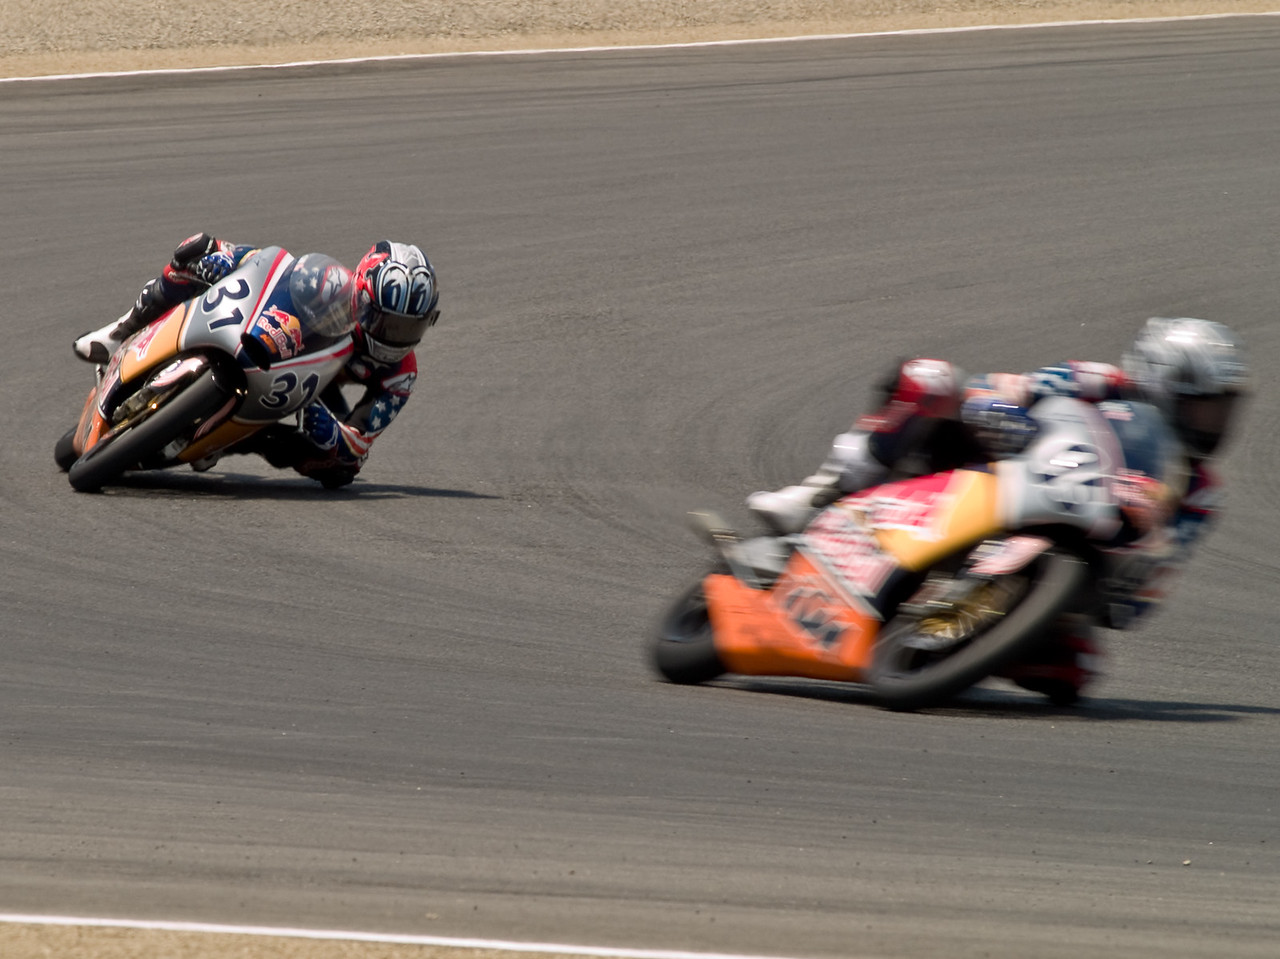 Motogp riders of 2015.  rookie cup riders of 2008 at 13 yrs old